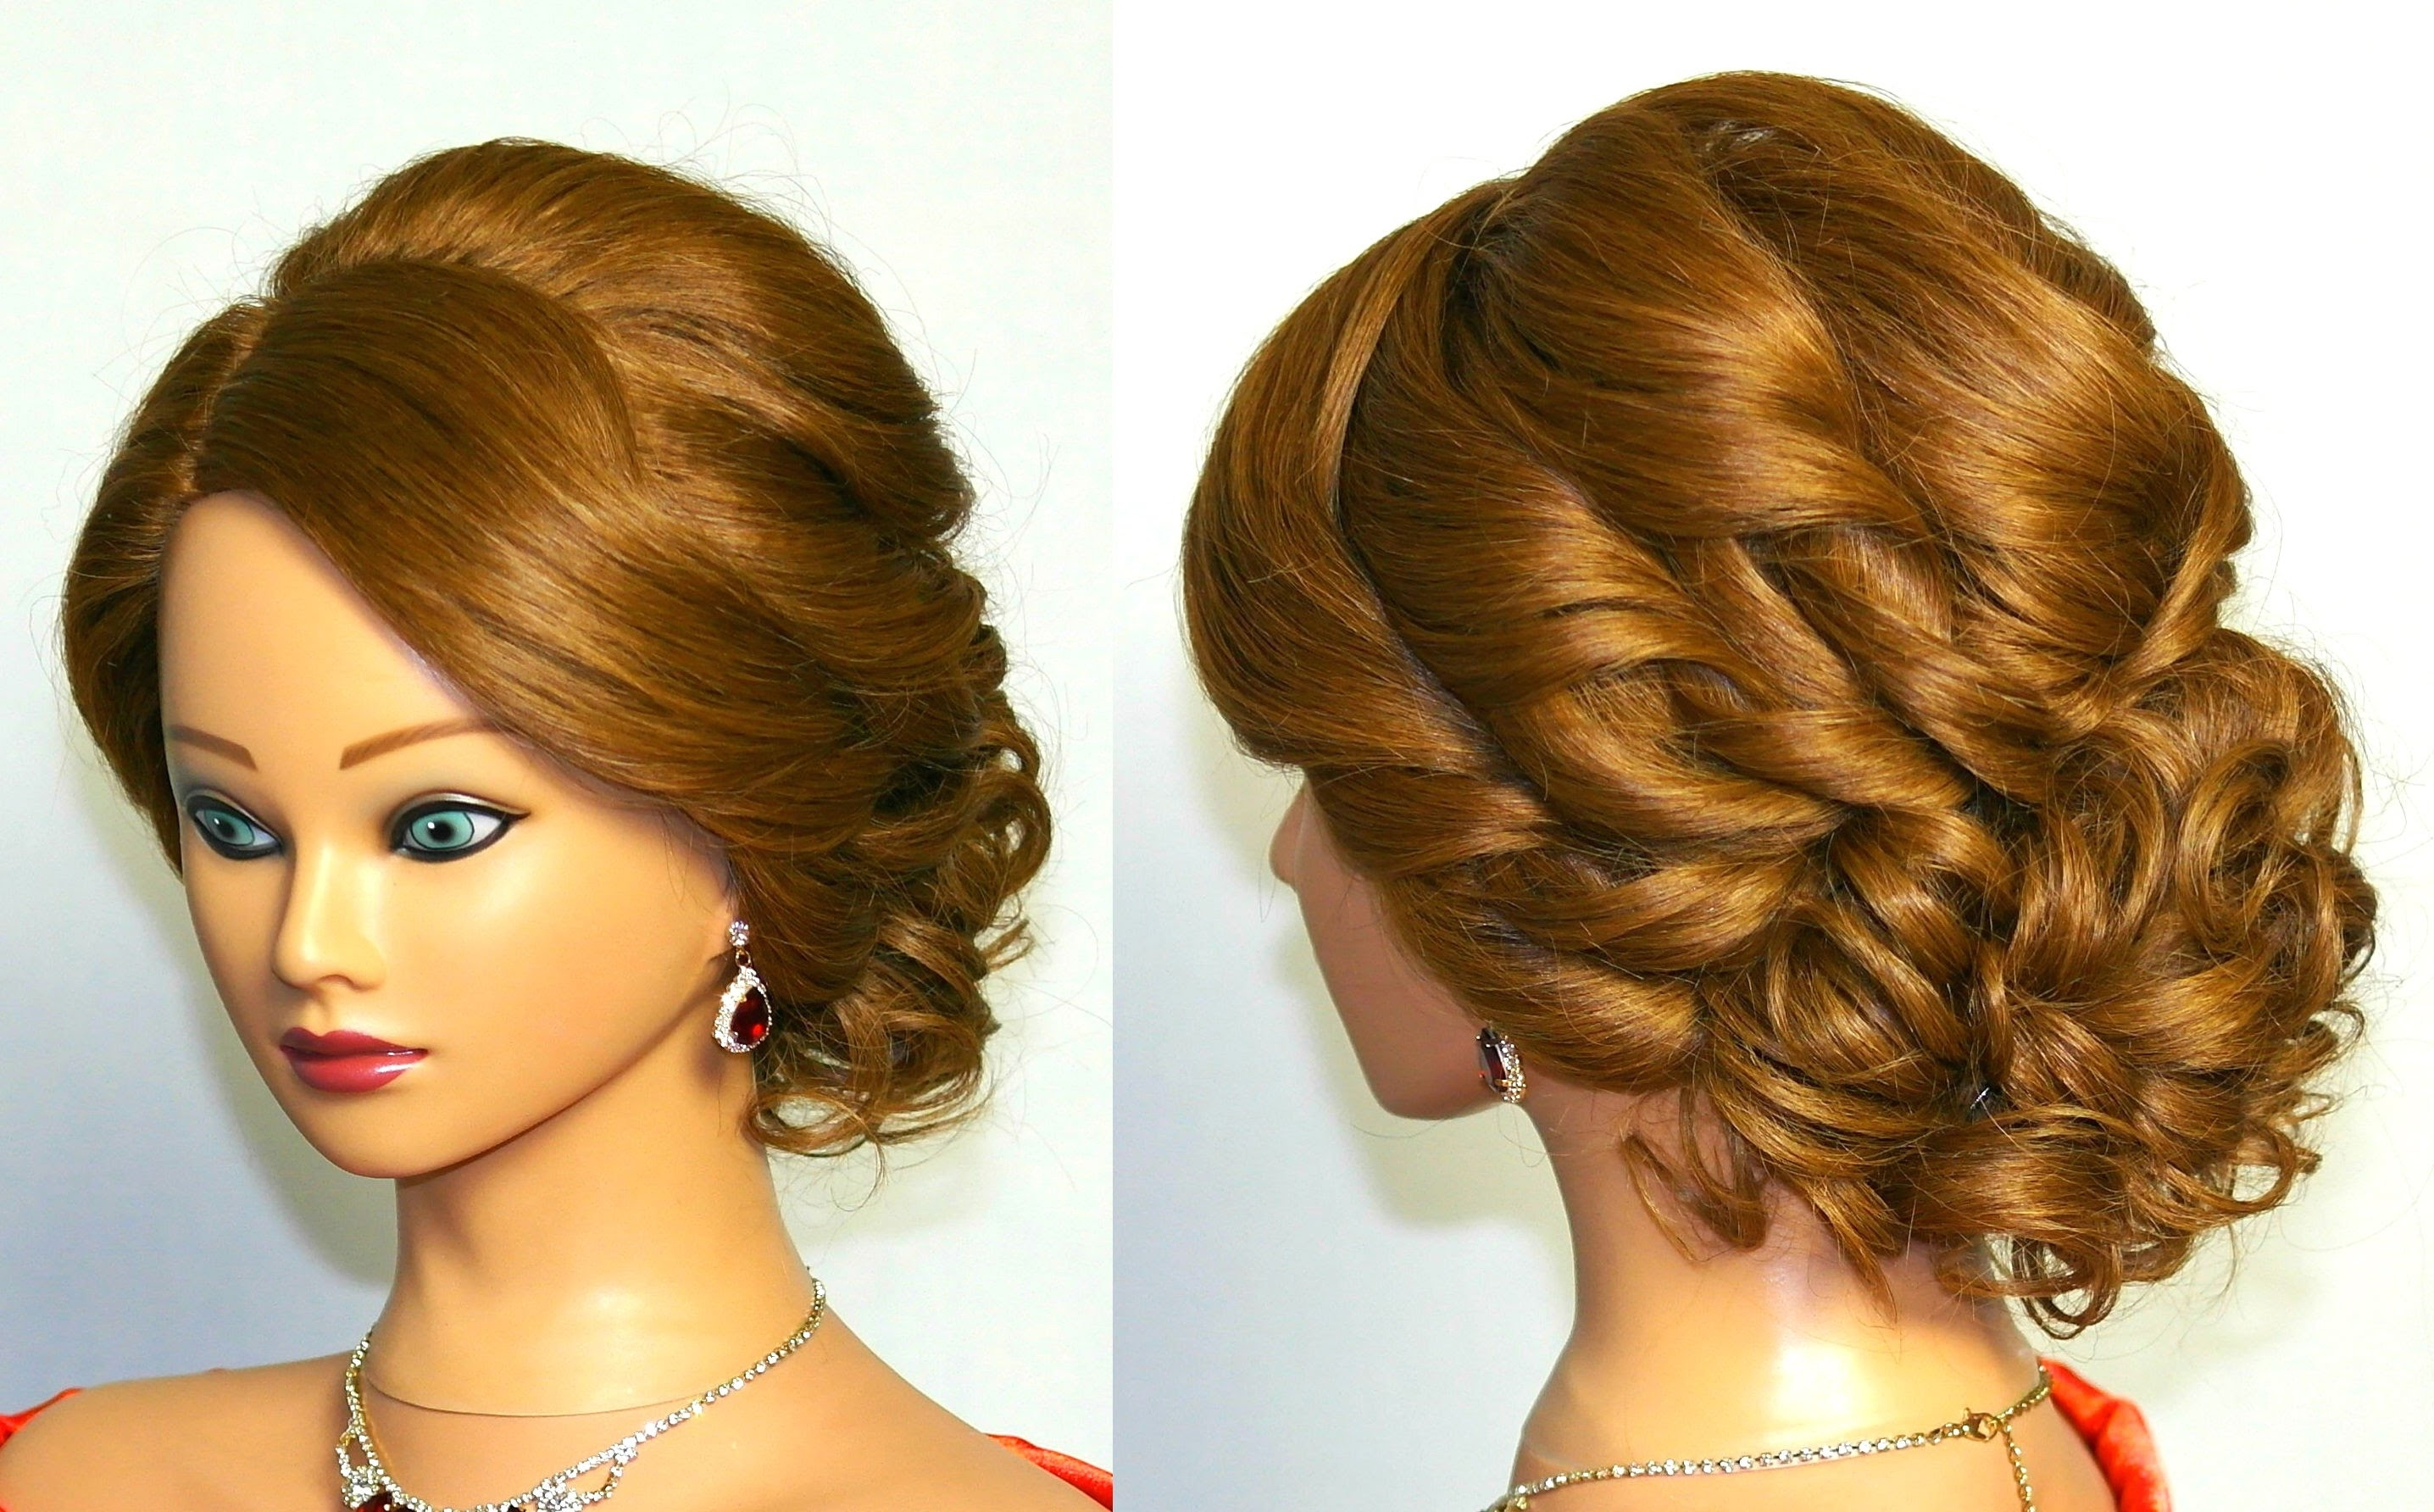 Bridal Curly Updo. Hairstyle For Medium Hair (View 1 of 15)